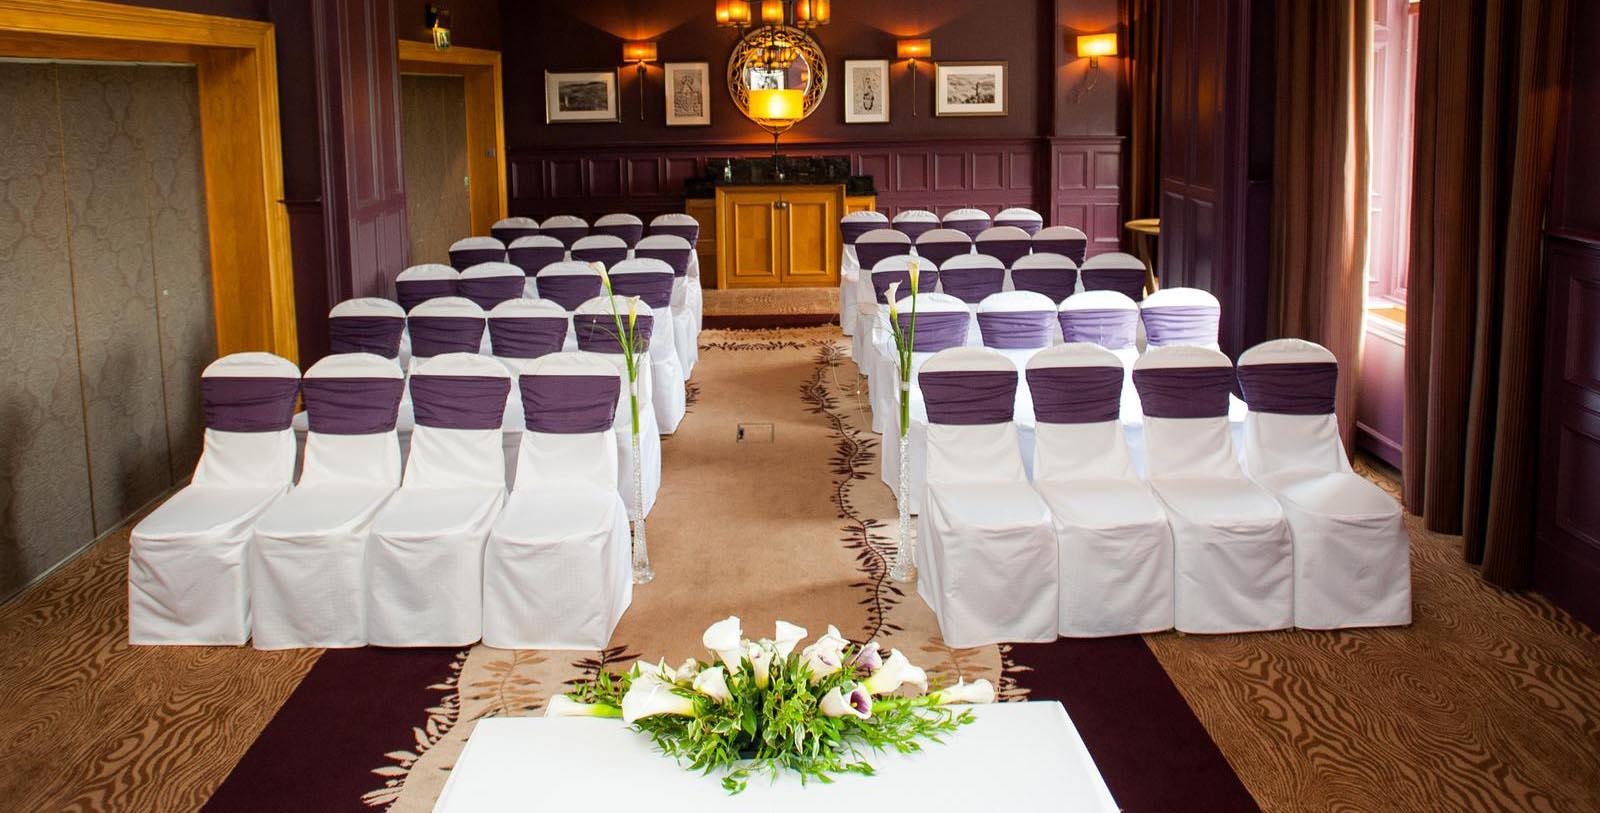 Image of meeting event space set up for wedding ceremony DoubleTree by Hilton Hotel Dunblane Hydro, 1878, Member of Historic Hotels Worldwide, in Dunblane, Scotland, Experience